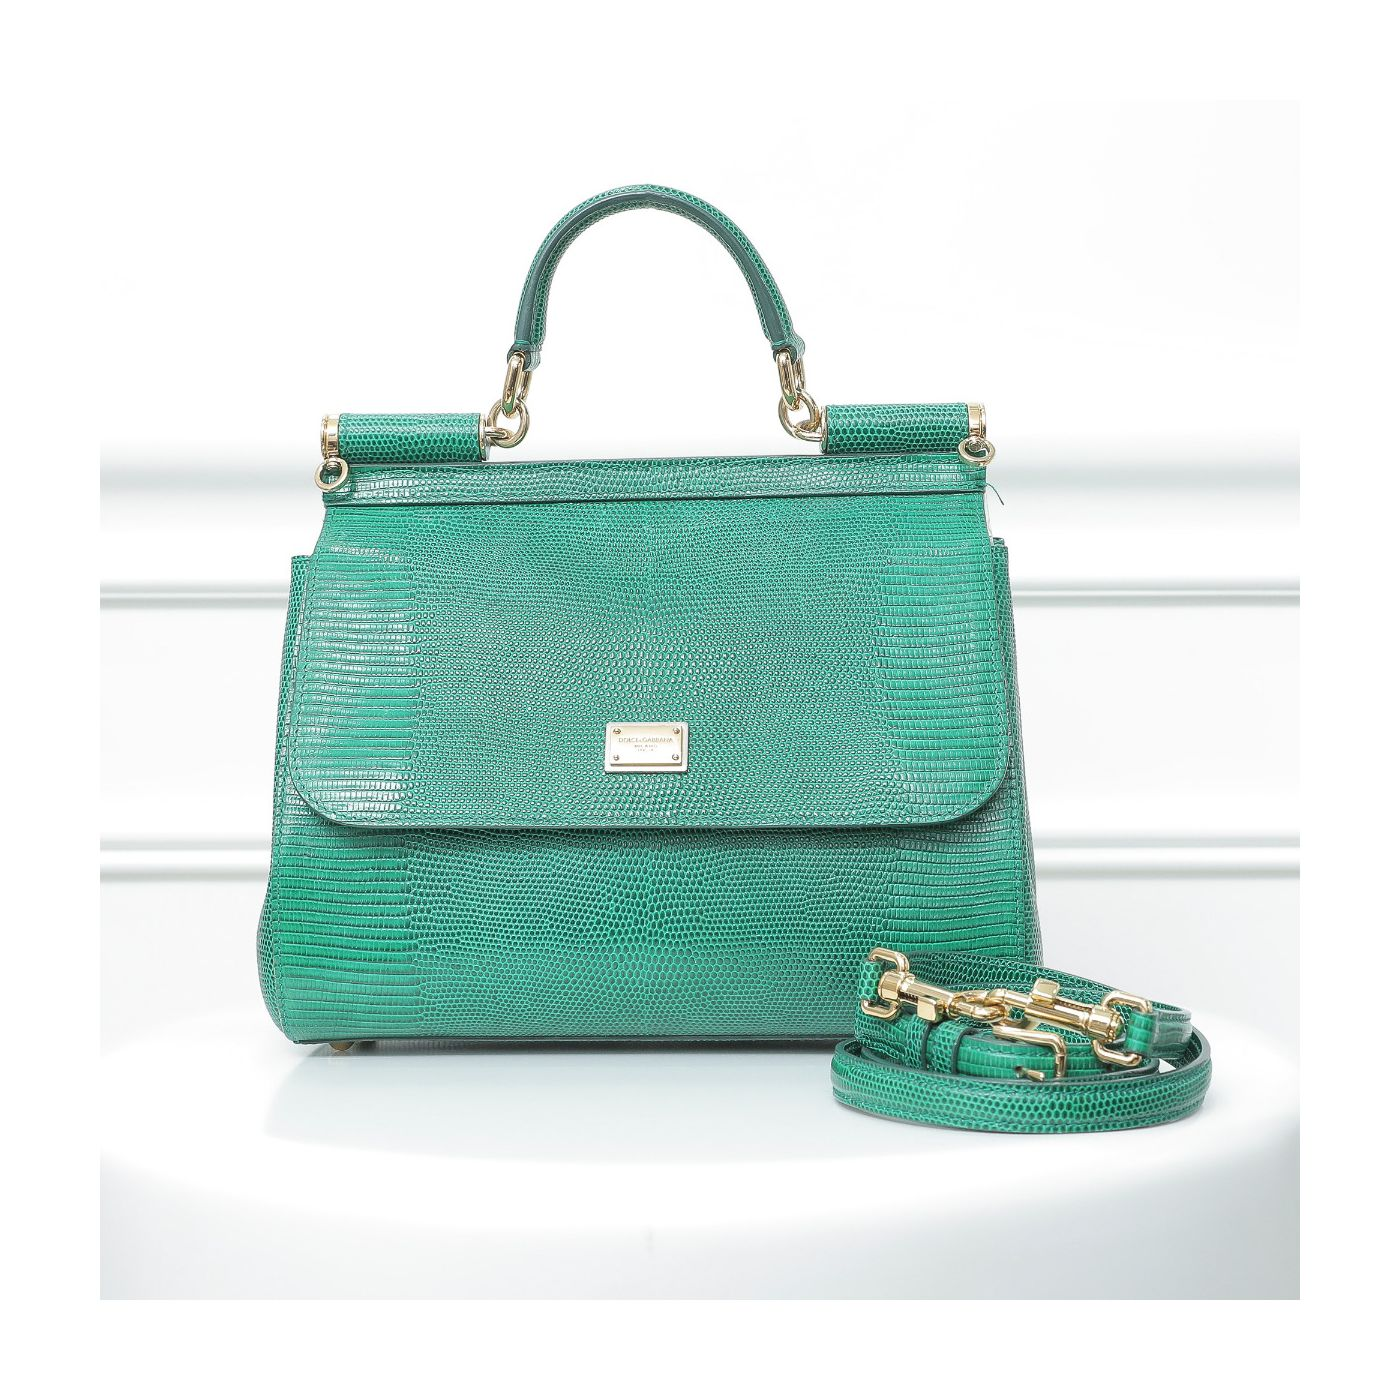 Dolce & Gabbana Green Sicily Lizard Embossed Medium Bag